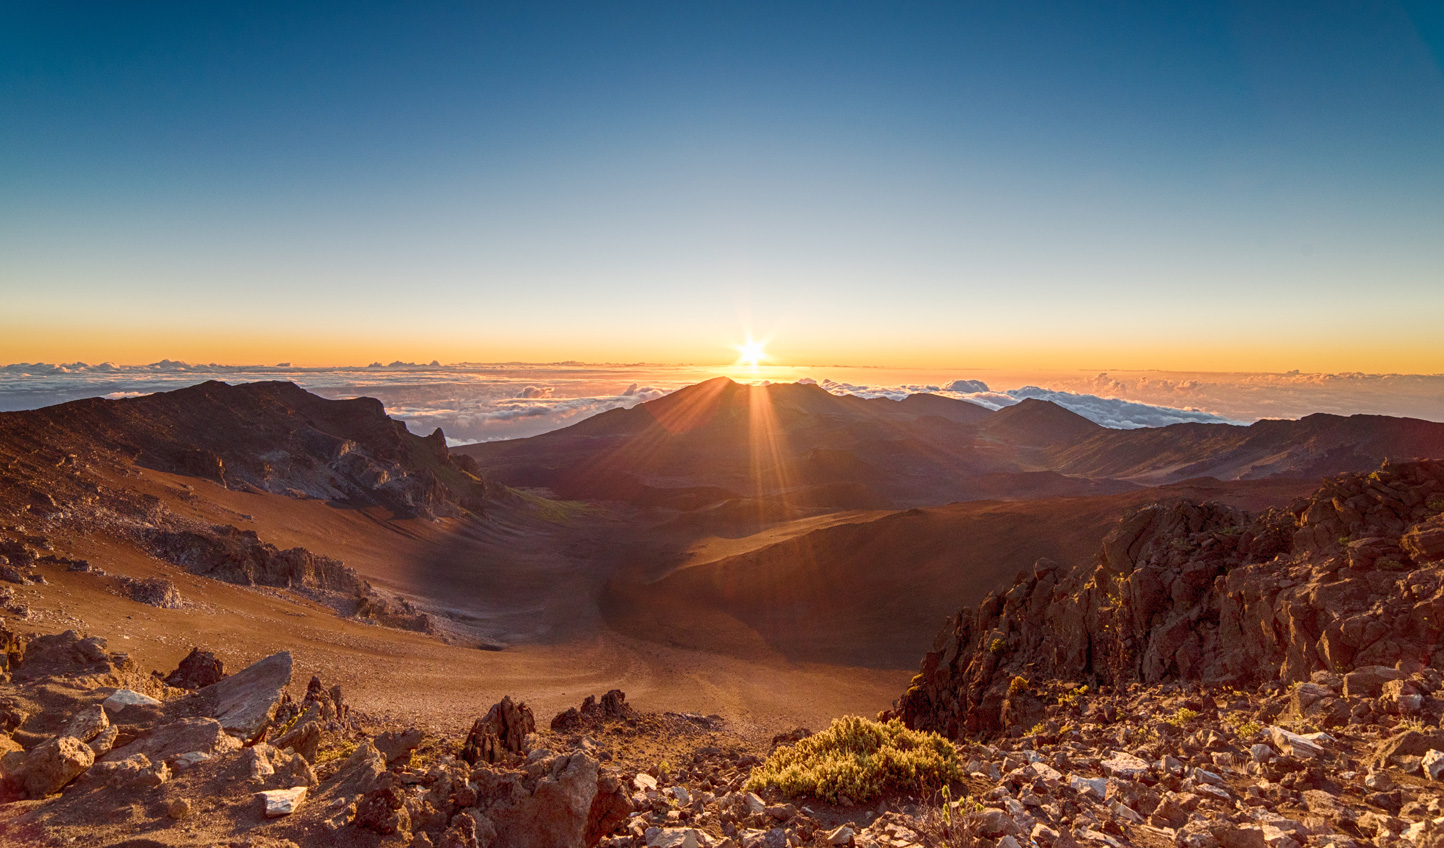 Start the day bright and early watching the sunrise over Haleakala National Park